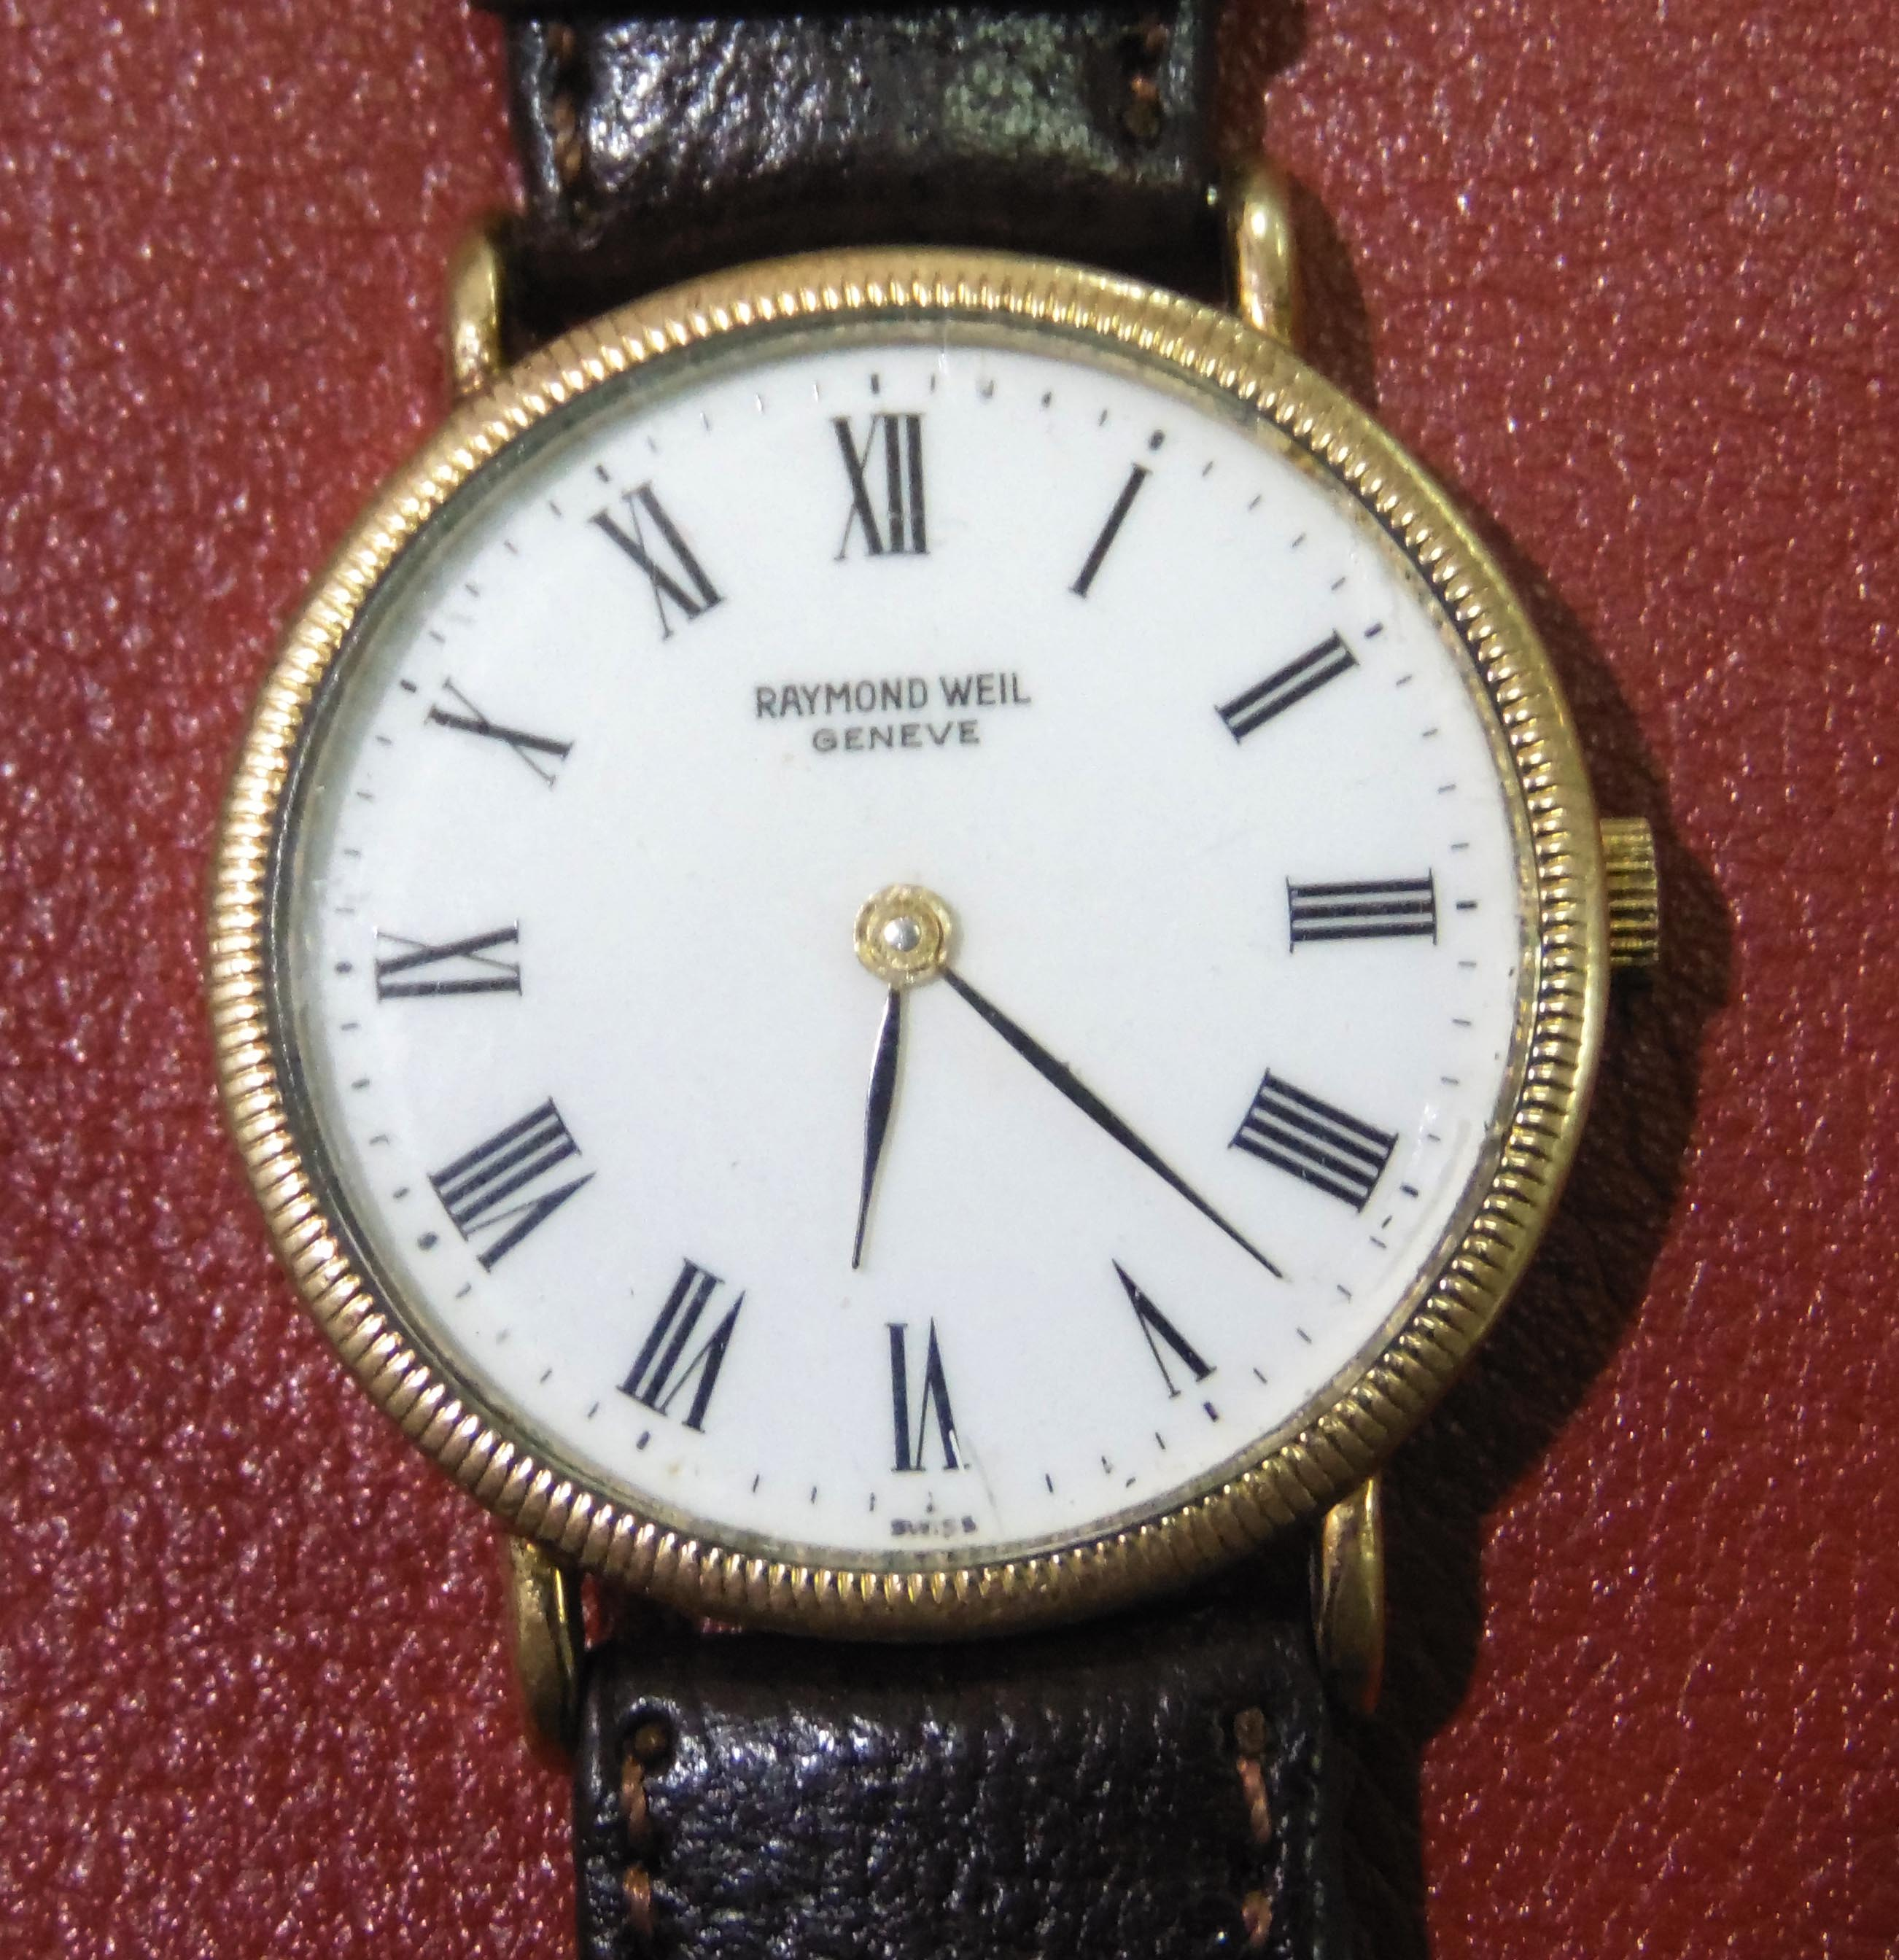 watches ladies file watch wikimedia raymond model wiki dress weil